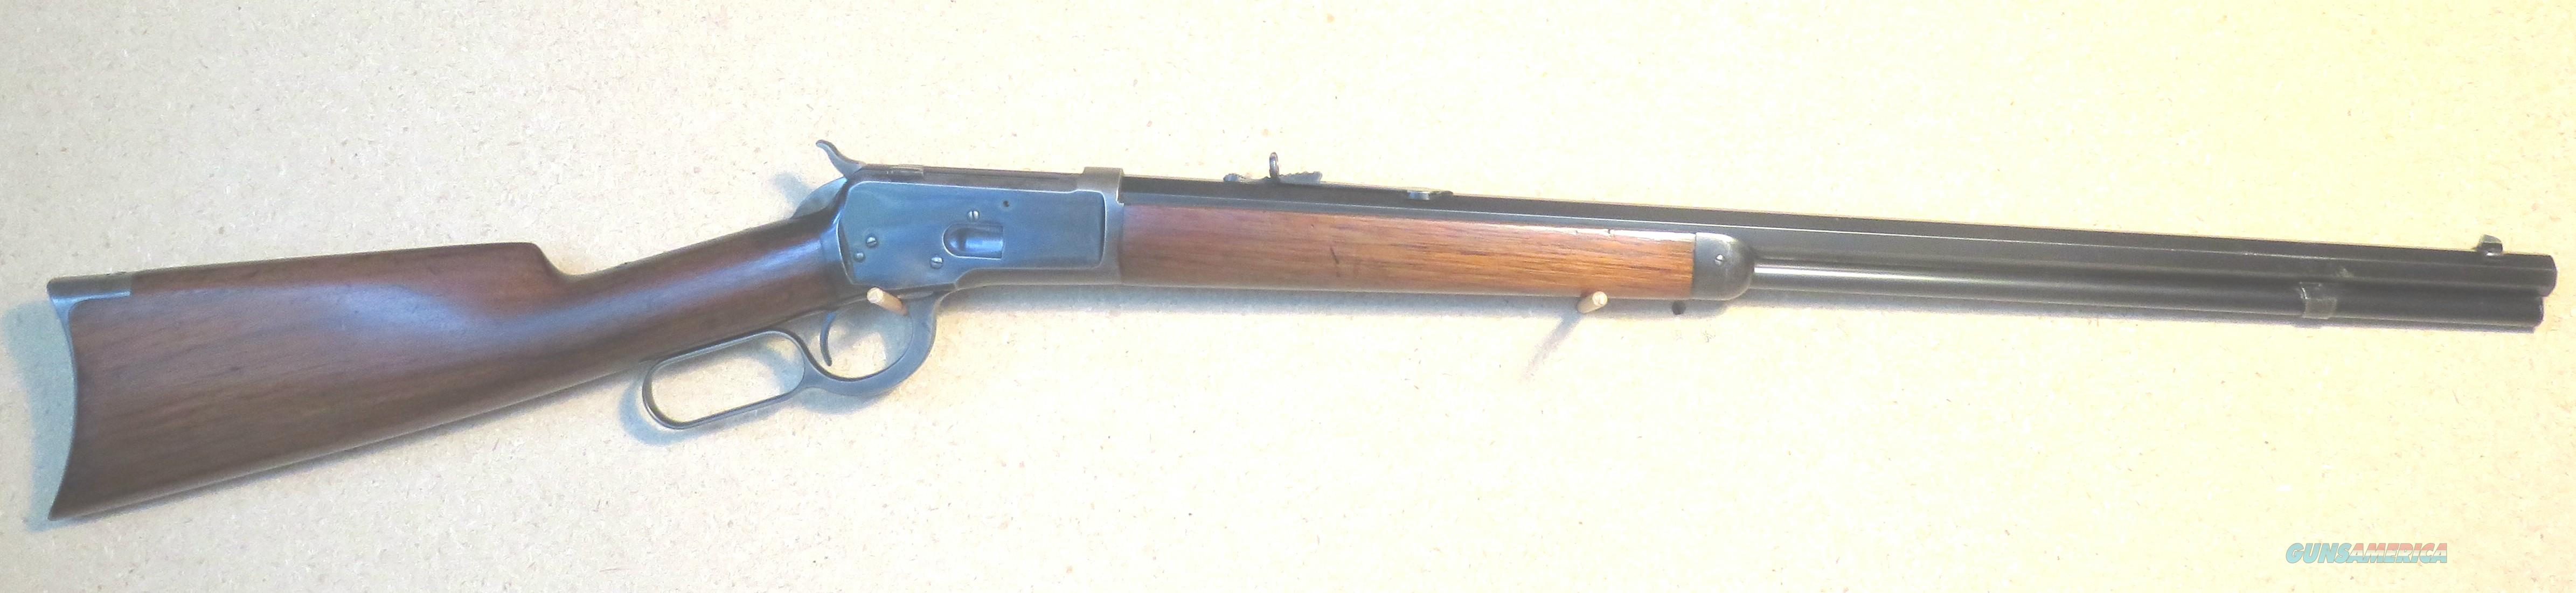 Winchester  Model 1892 Rifle .32 WCF (32-20)   Guns > Rifles > Winchester Rifles - Modern Pump